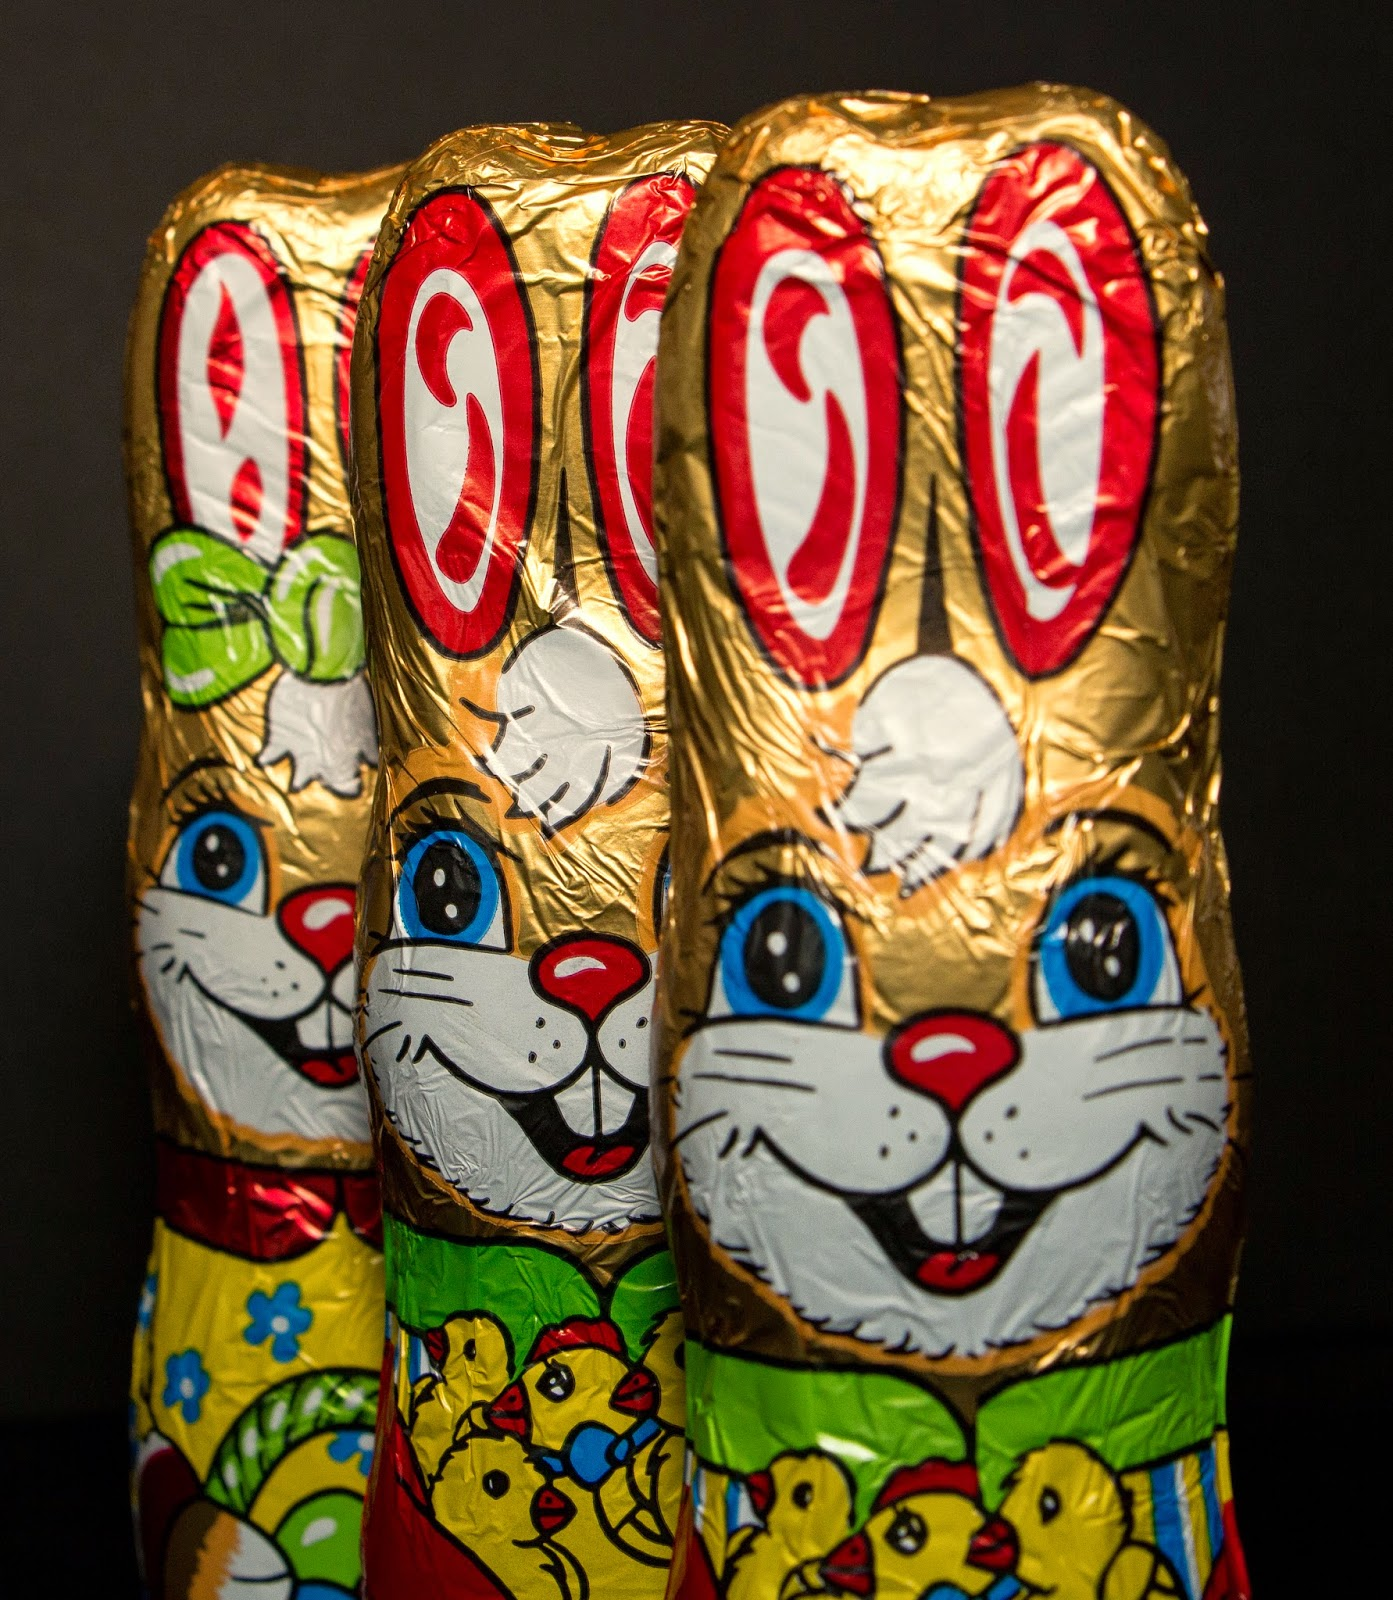 Happy Easter 2014 - With Canon EOS 700D / Various Lenses